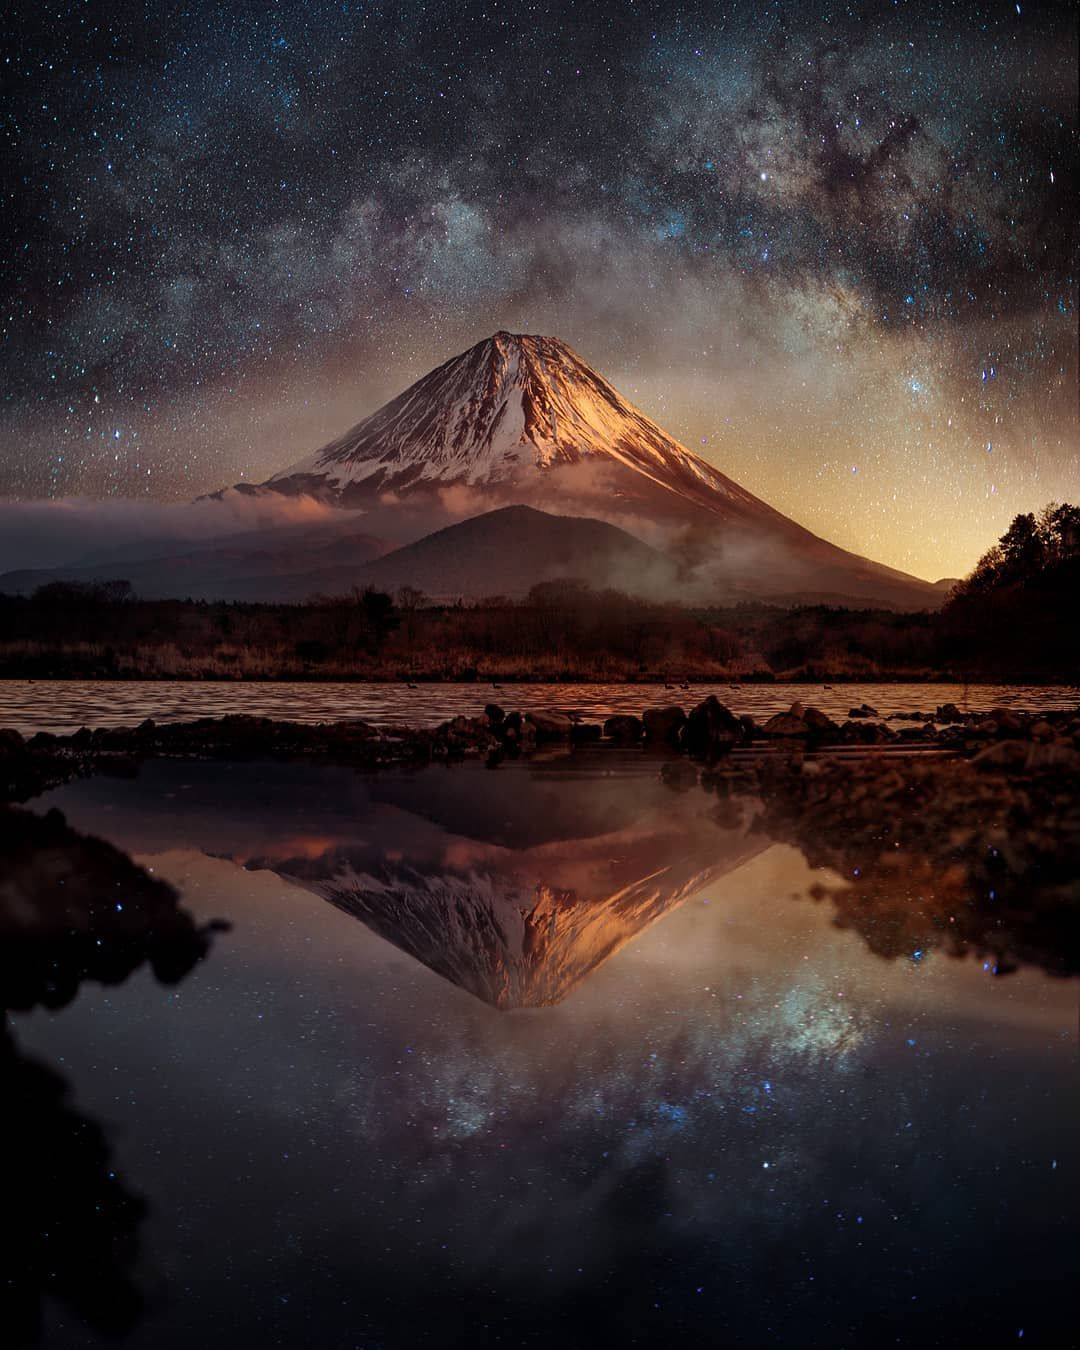 Perfect Night Nature Life On Earth Stars Galaxy Milky Way Night Photography Nature Reflection Nature Photography Landscape Photography Nature